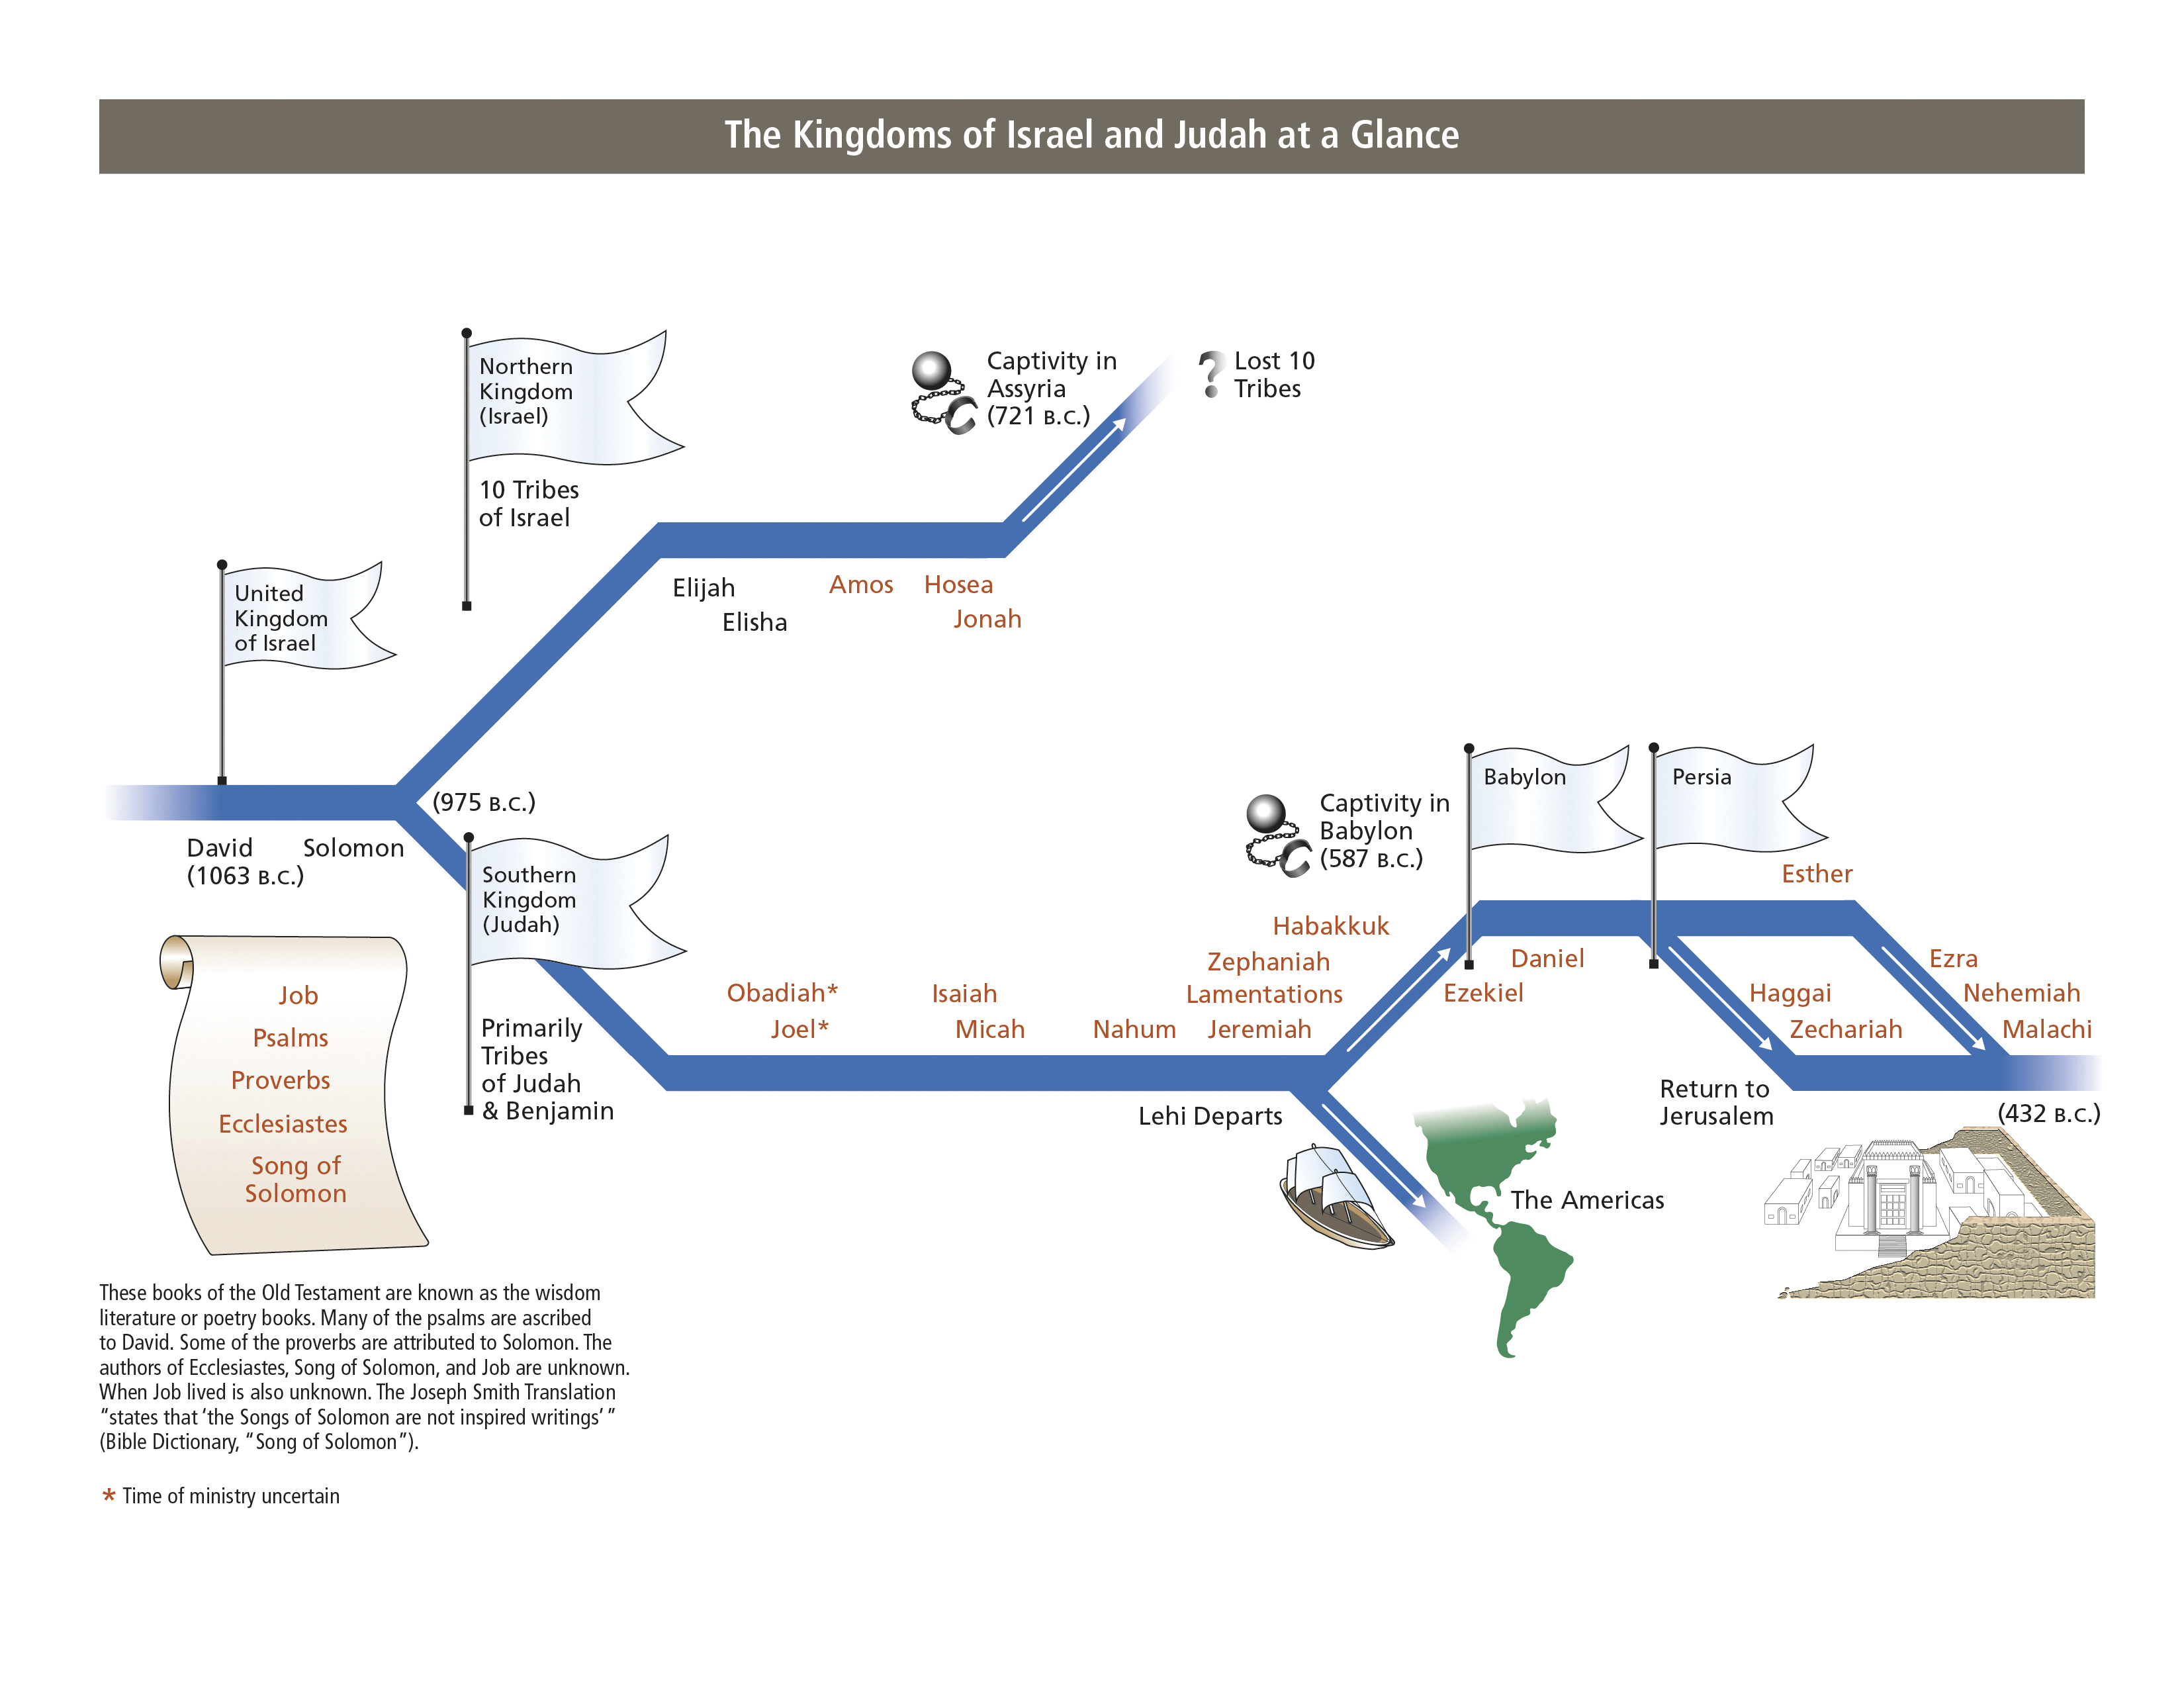 A chart depicting the timeline of the kingdoms of Israel and Judah.